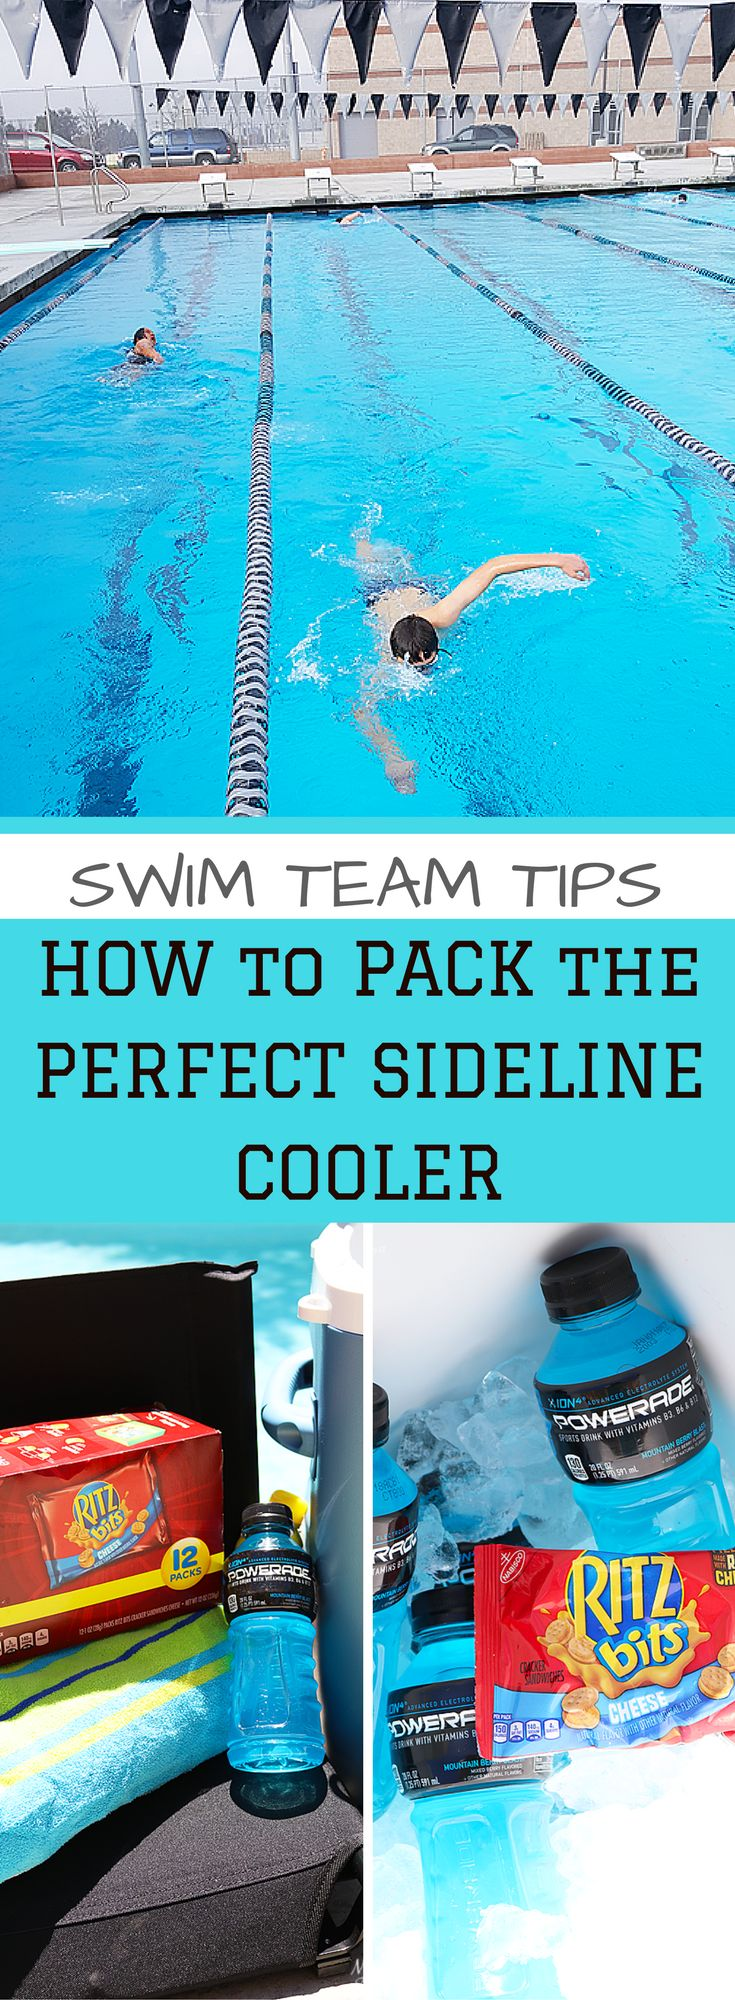 Swim Team Tips - How to pack the perfect sideline cooler #SaveSnackScore AD